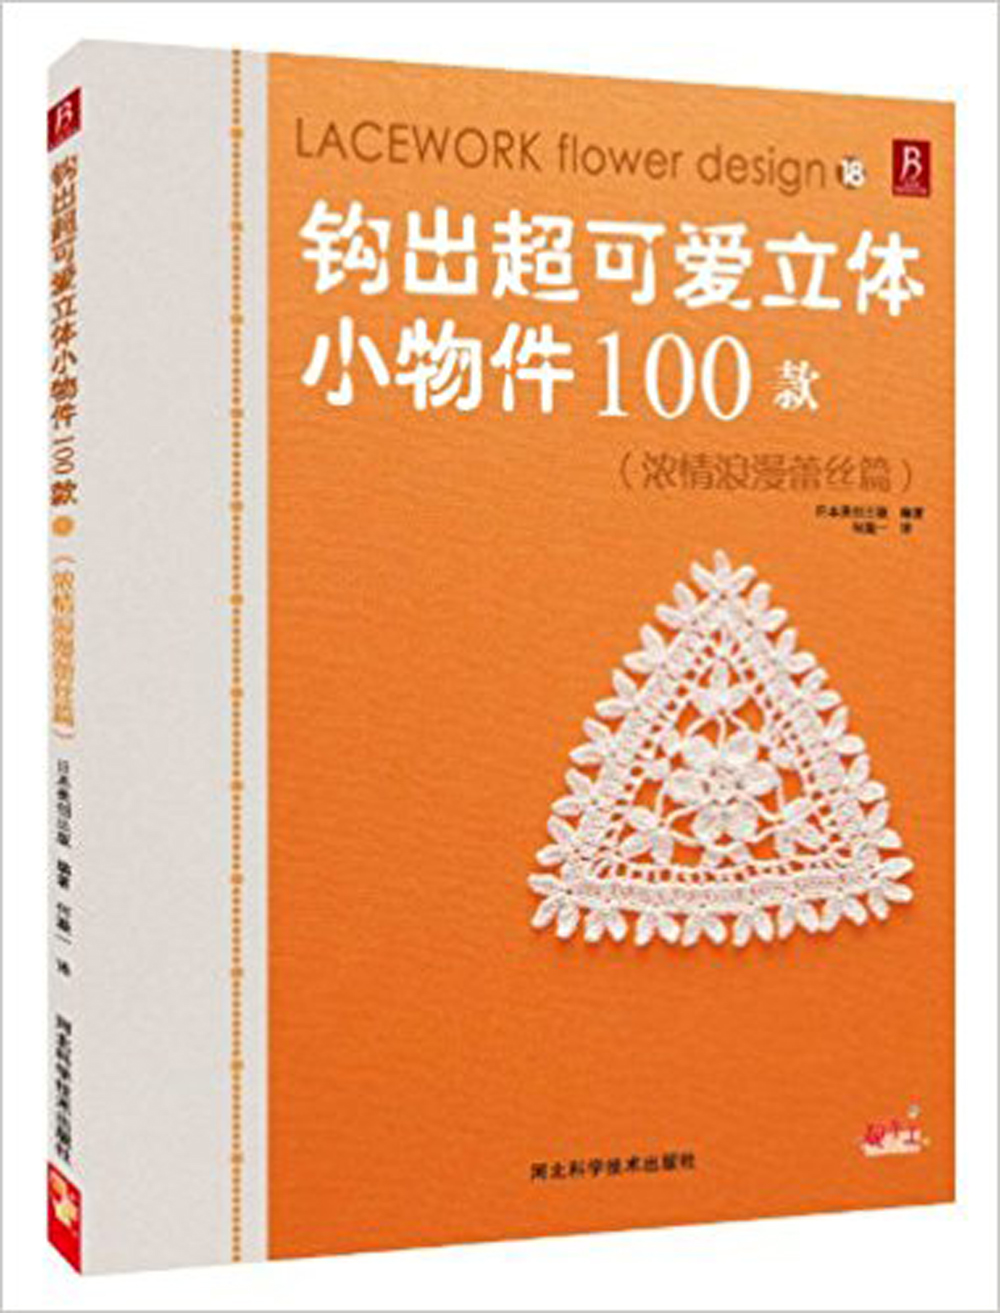 Japanese Knitting Book Chinese Version Weaving Super-cute 3D Small Objects 100 Models :Lacework Flower Design